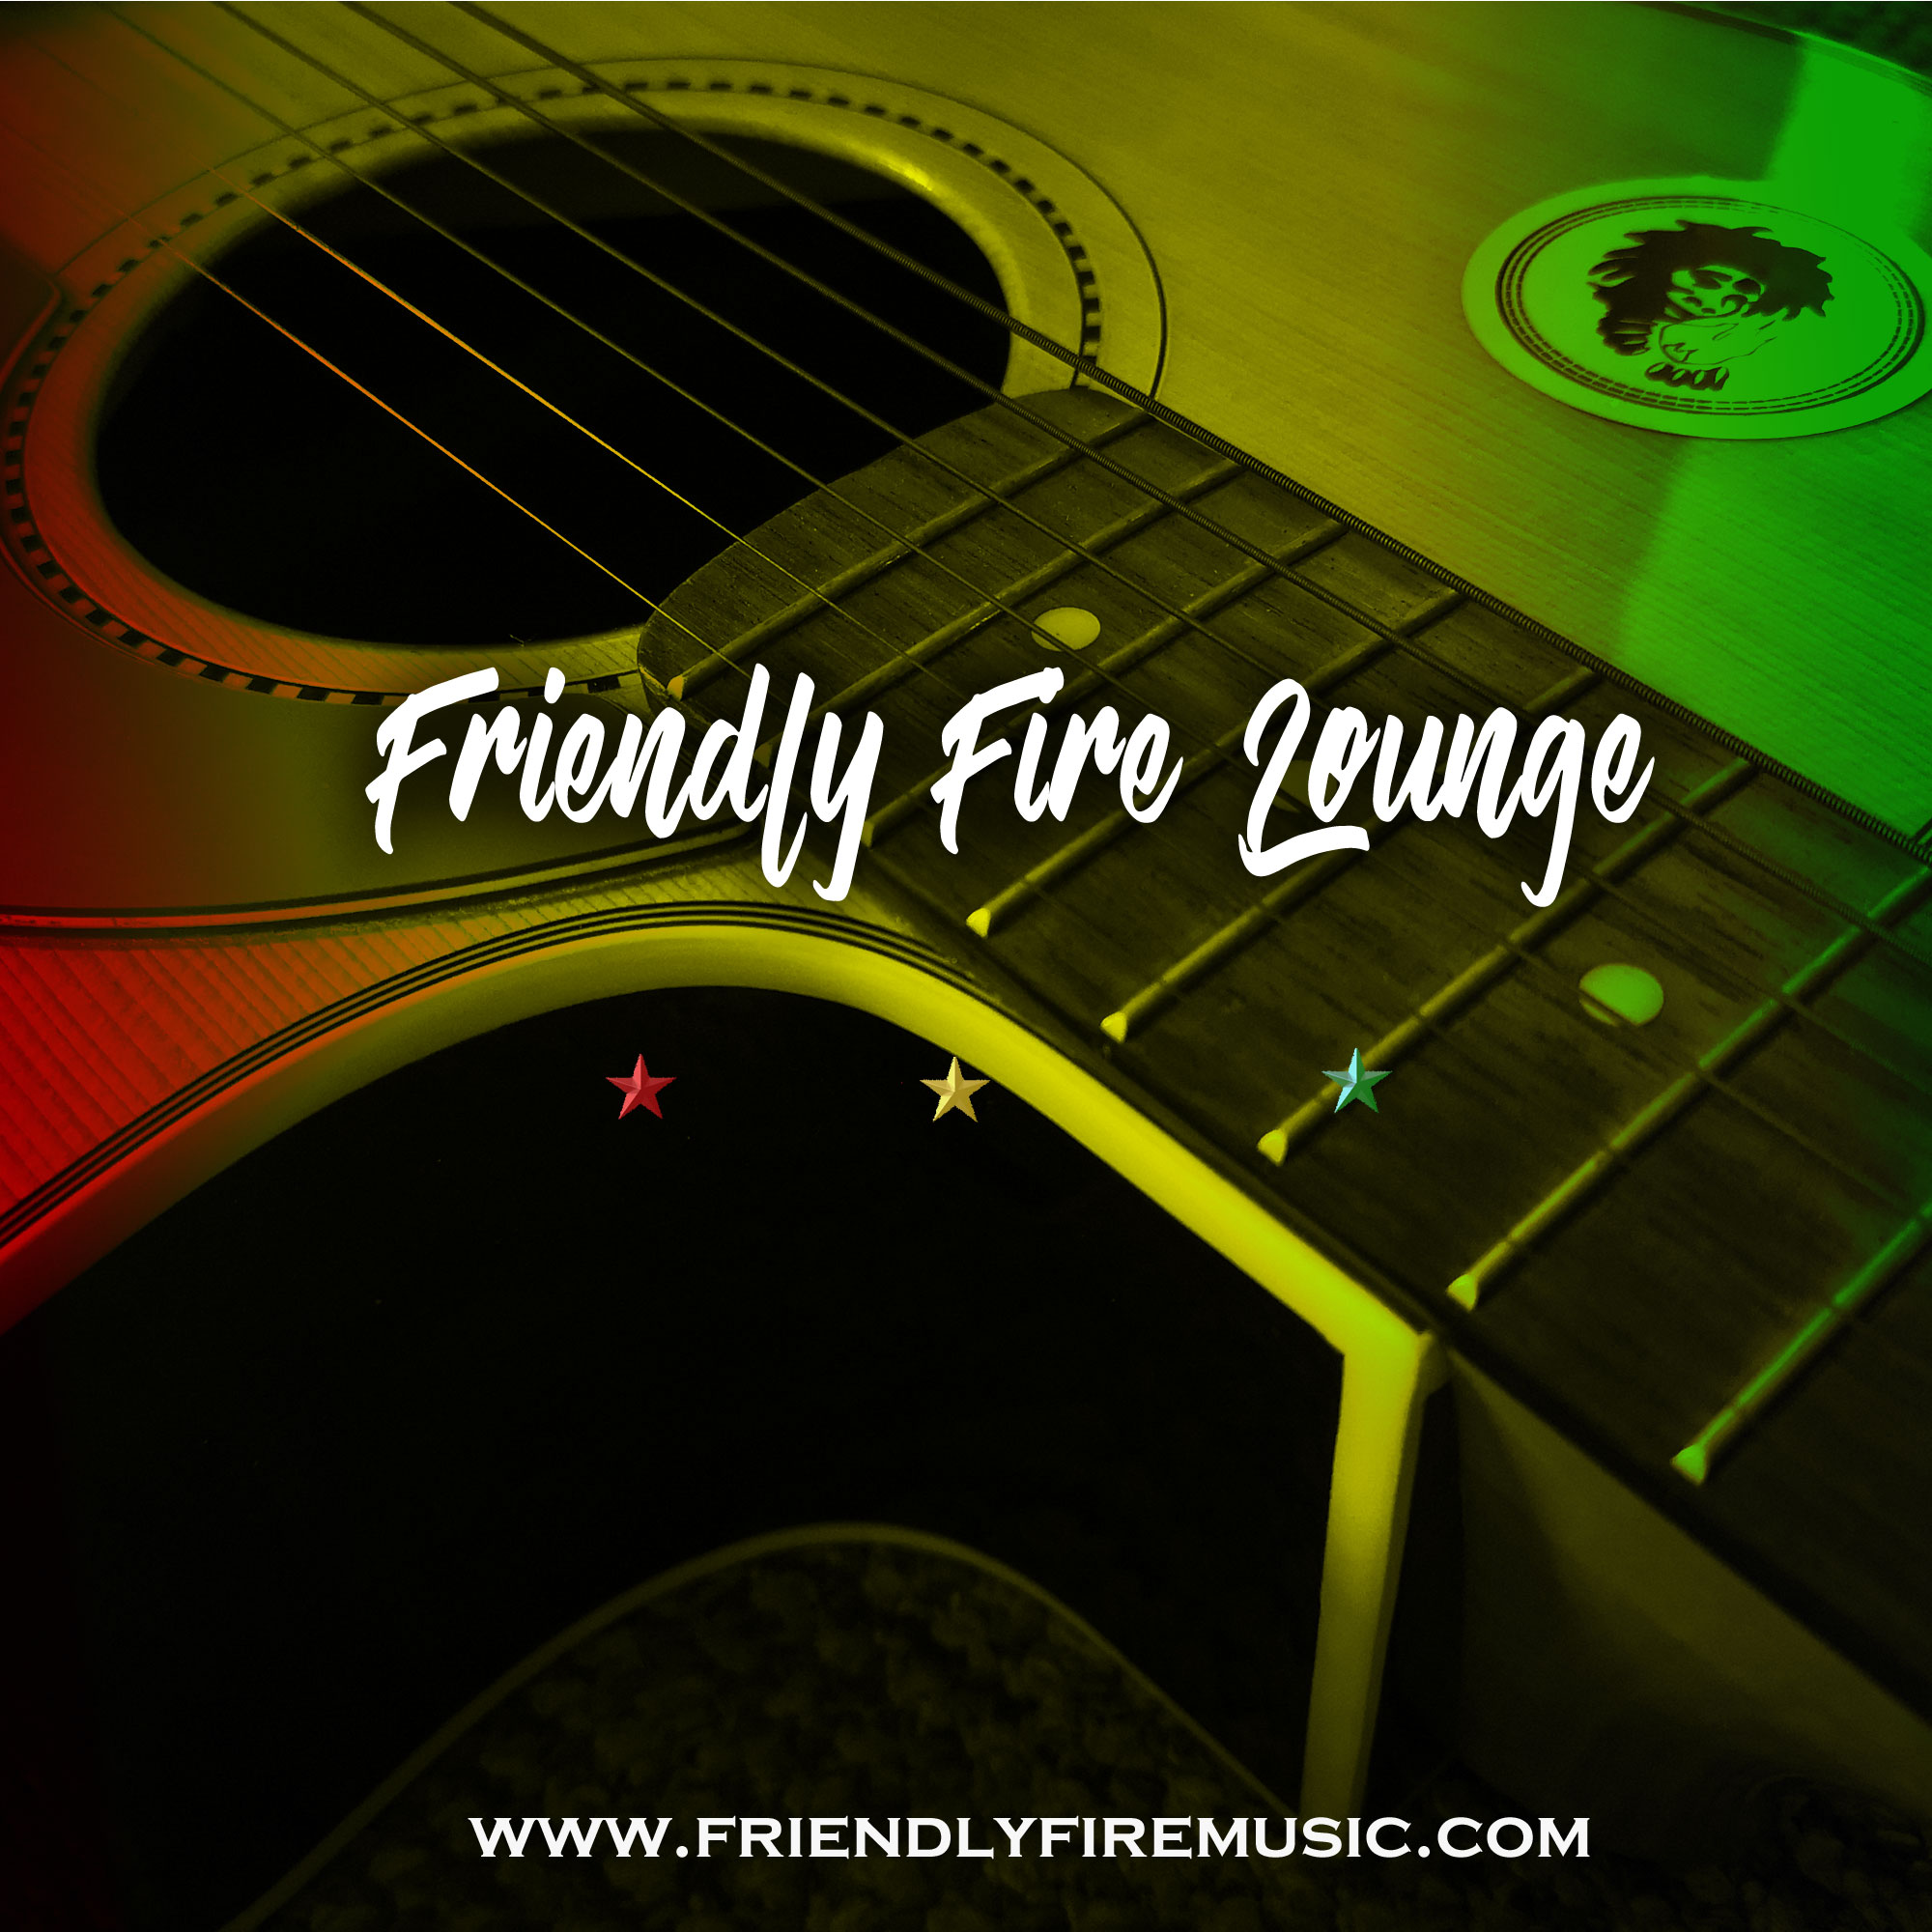 FF--acoustic-lounge-flyer-cover